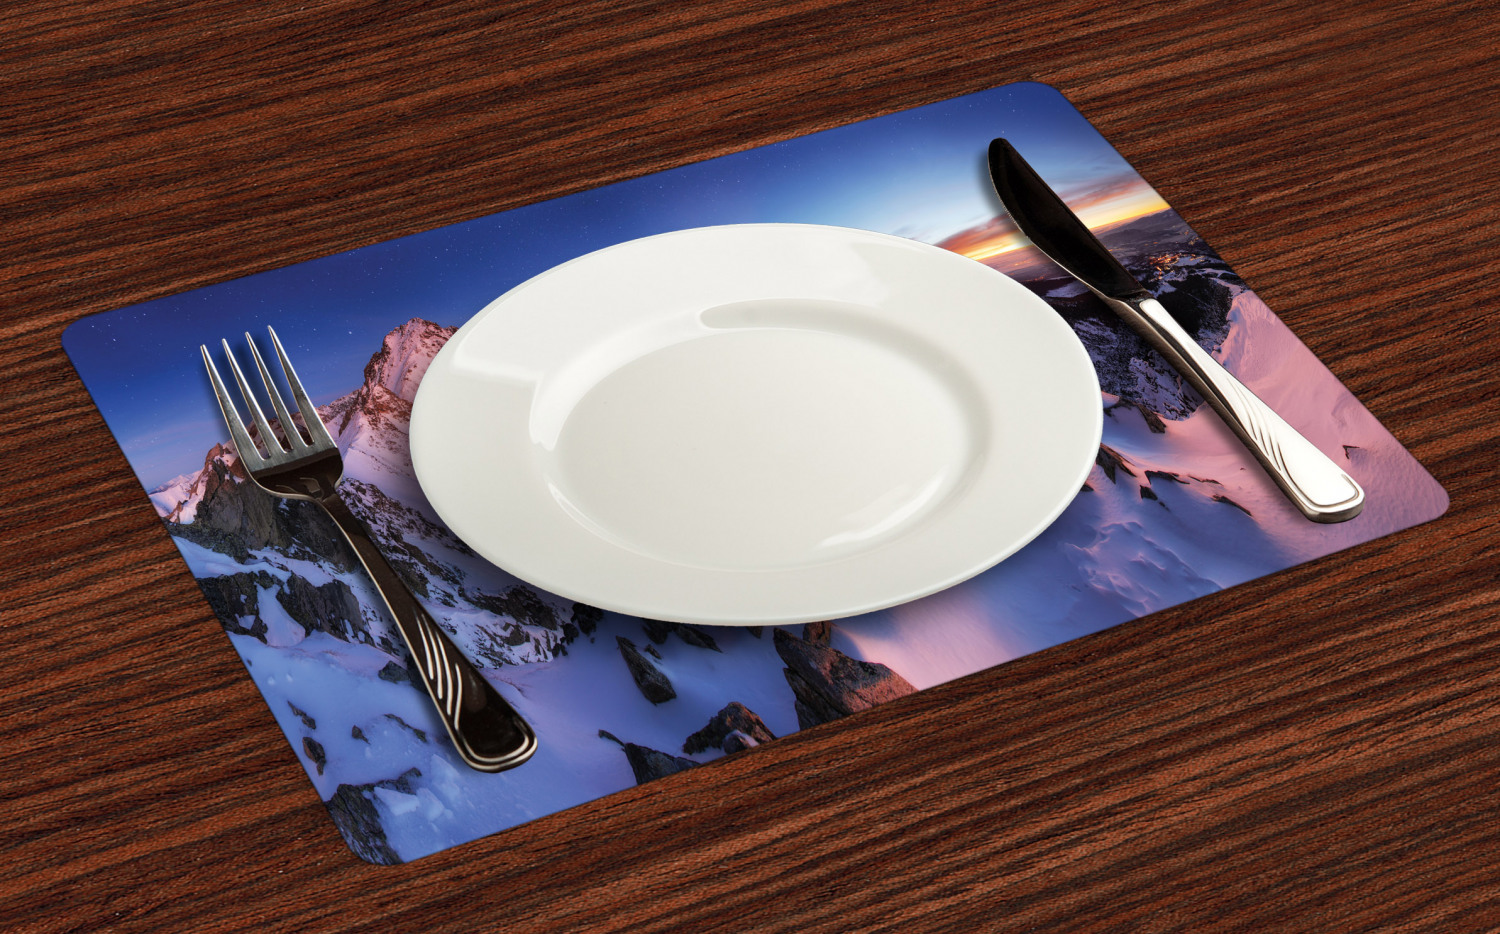 Ambesonne-Fabric-Place-Mats-Set-of-4-Placemats-for-Dining-Room-and-Kitchen-Table thumbnail 145